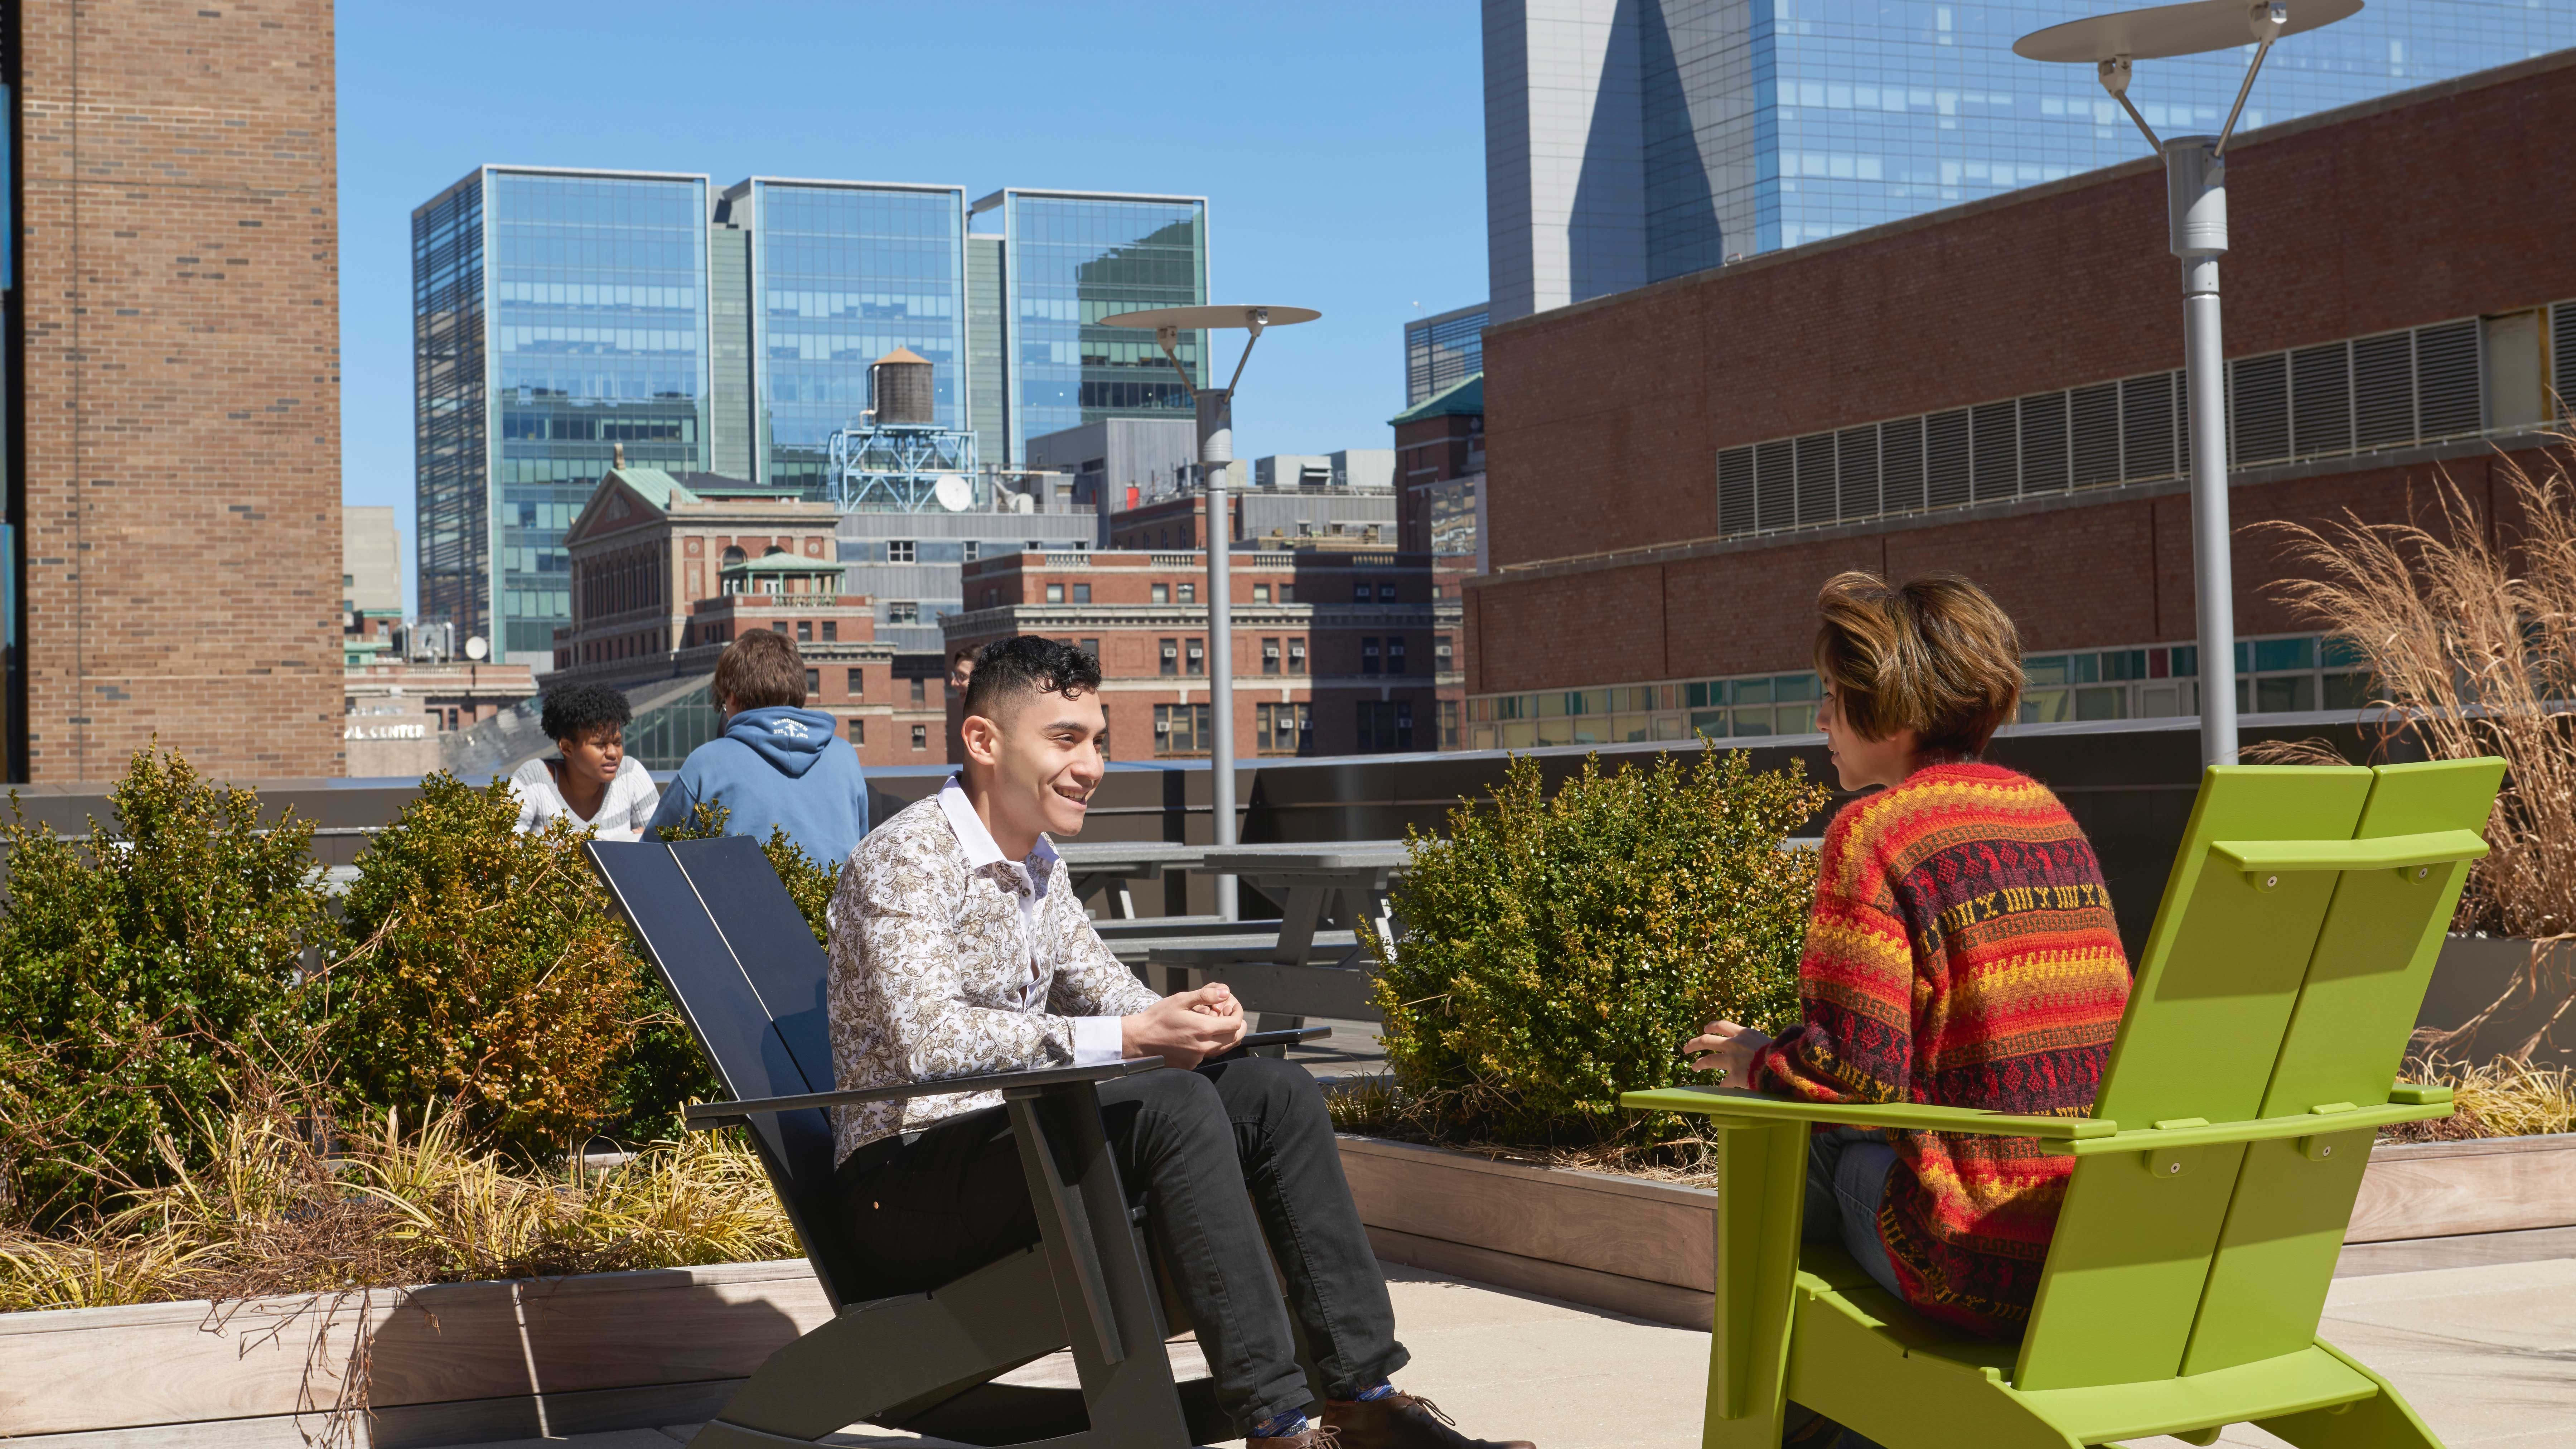 Students enjoying the terrace at the 24th Street Residence